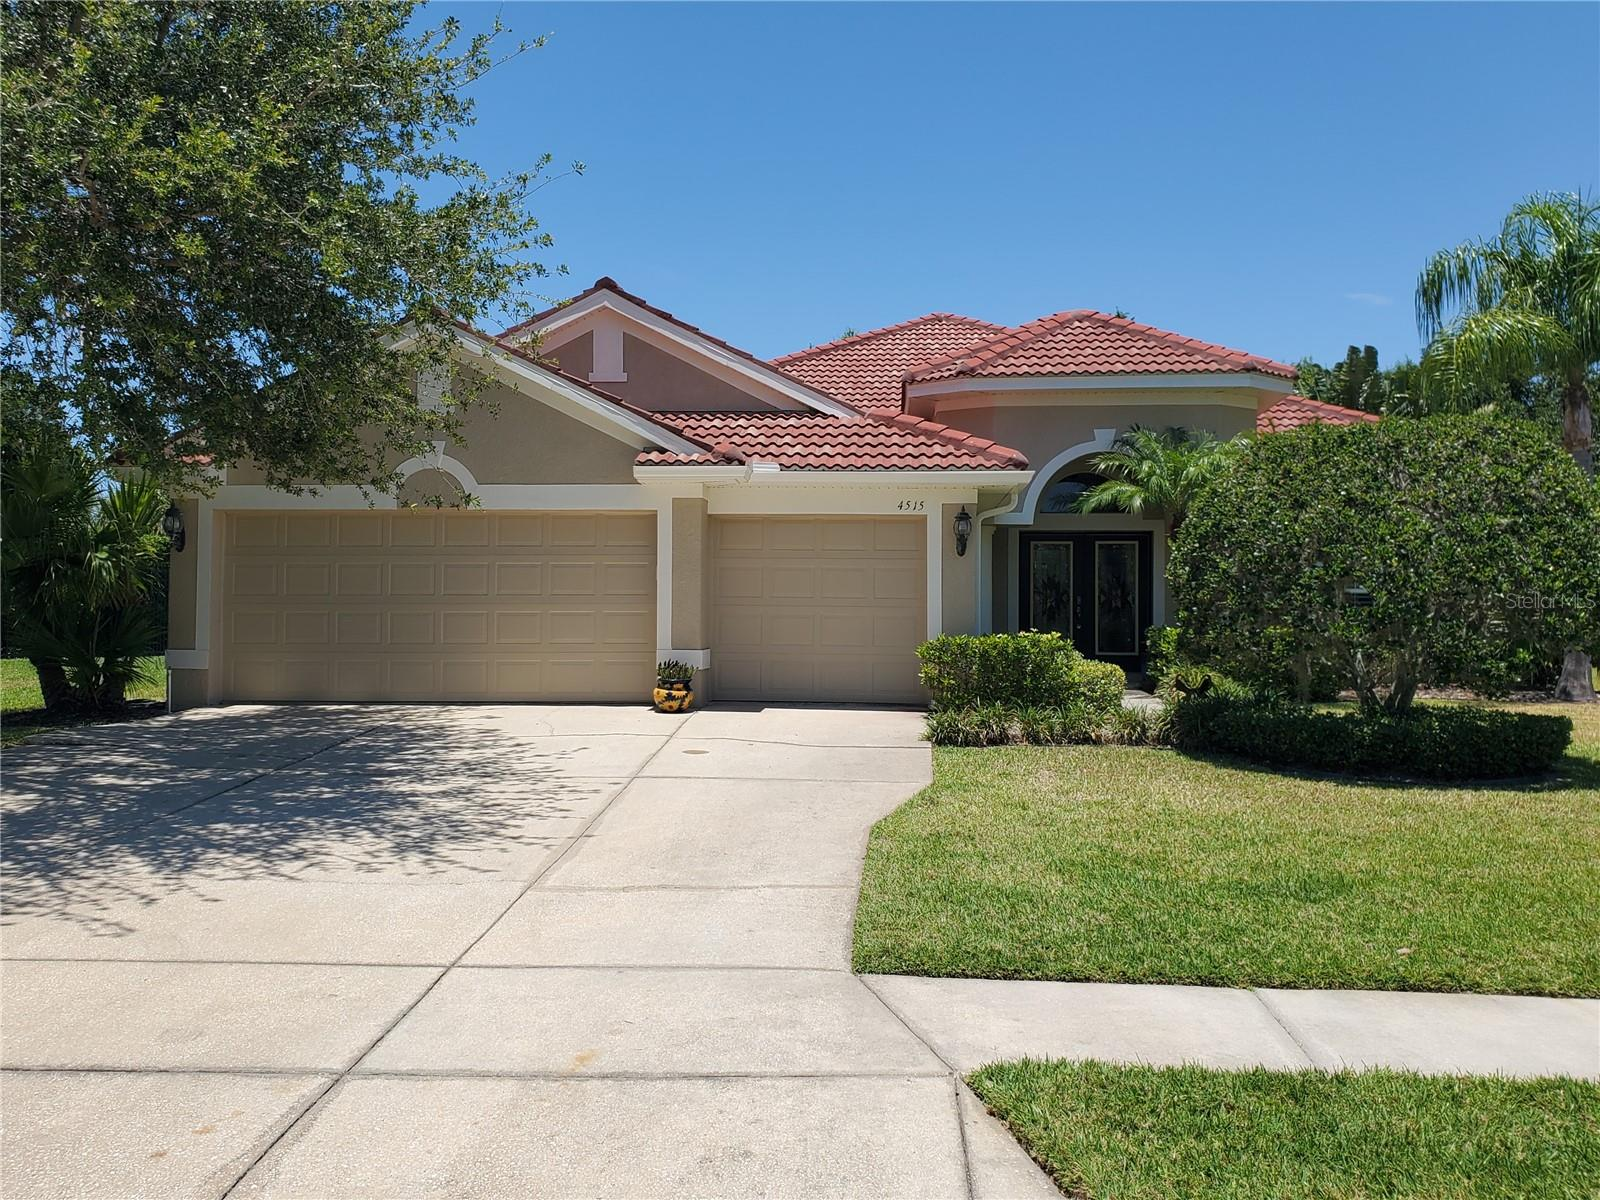 Primary photo of recently sold MLS# A4502494